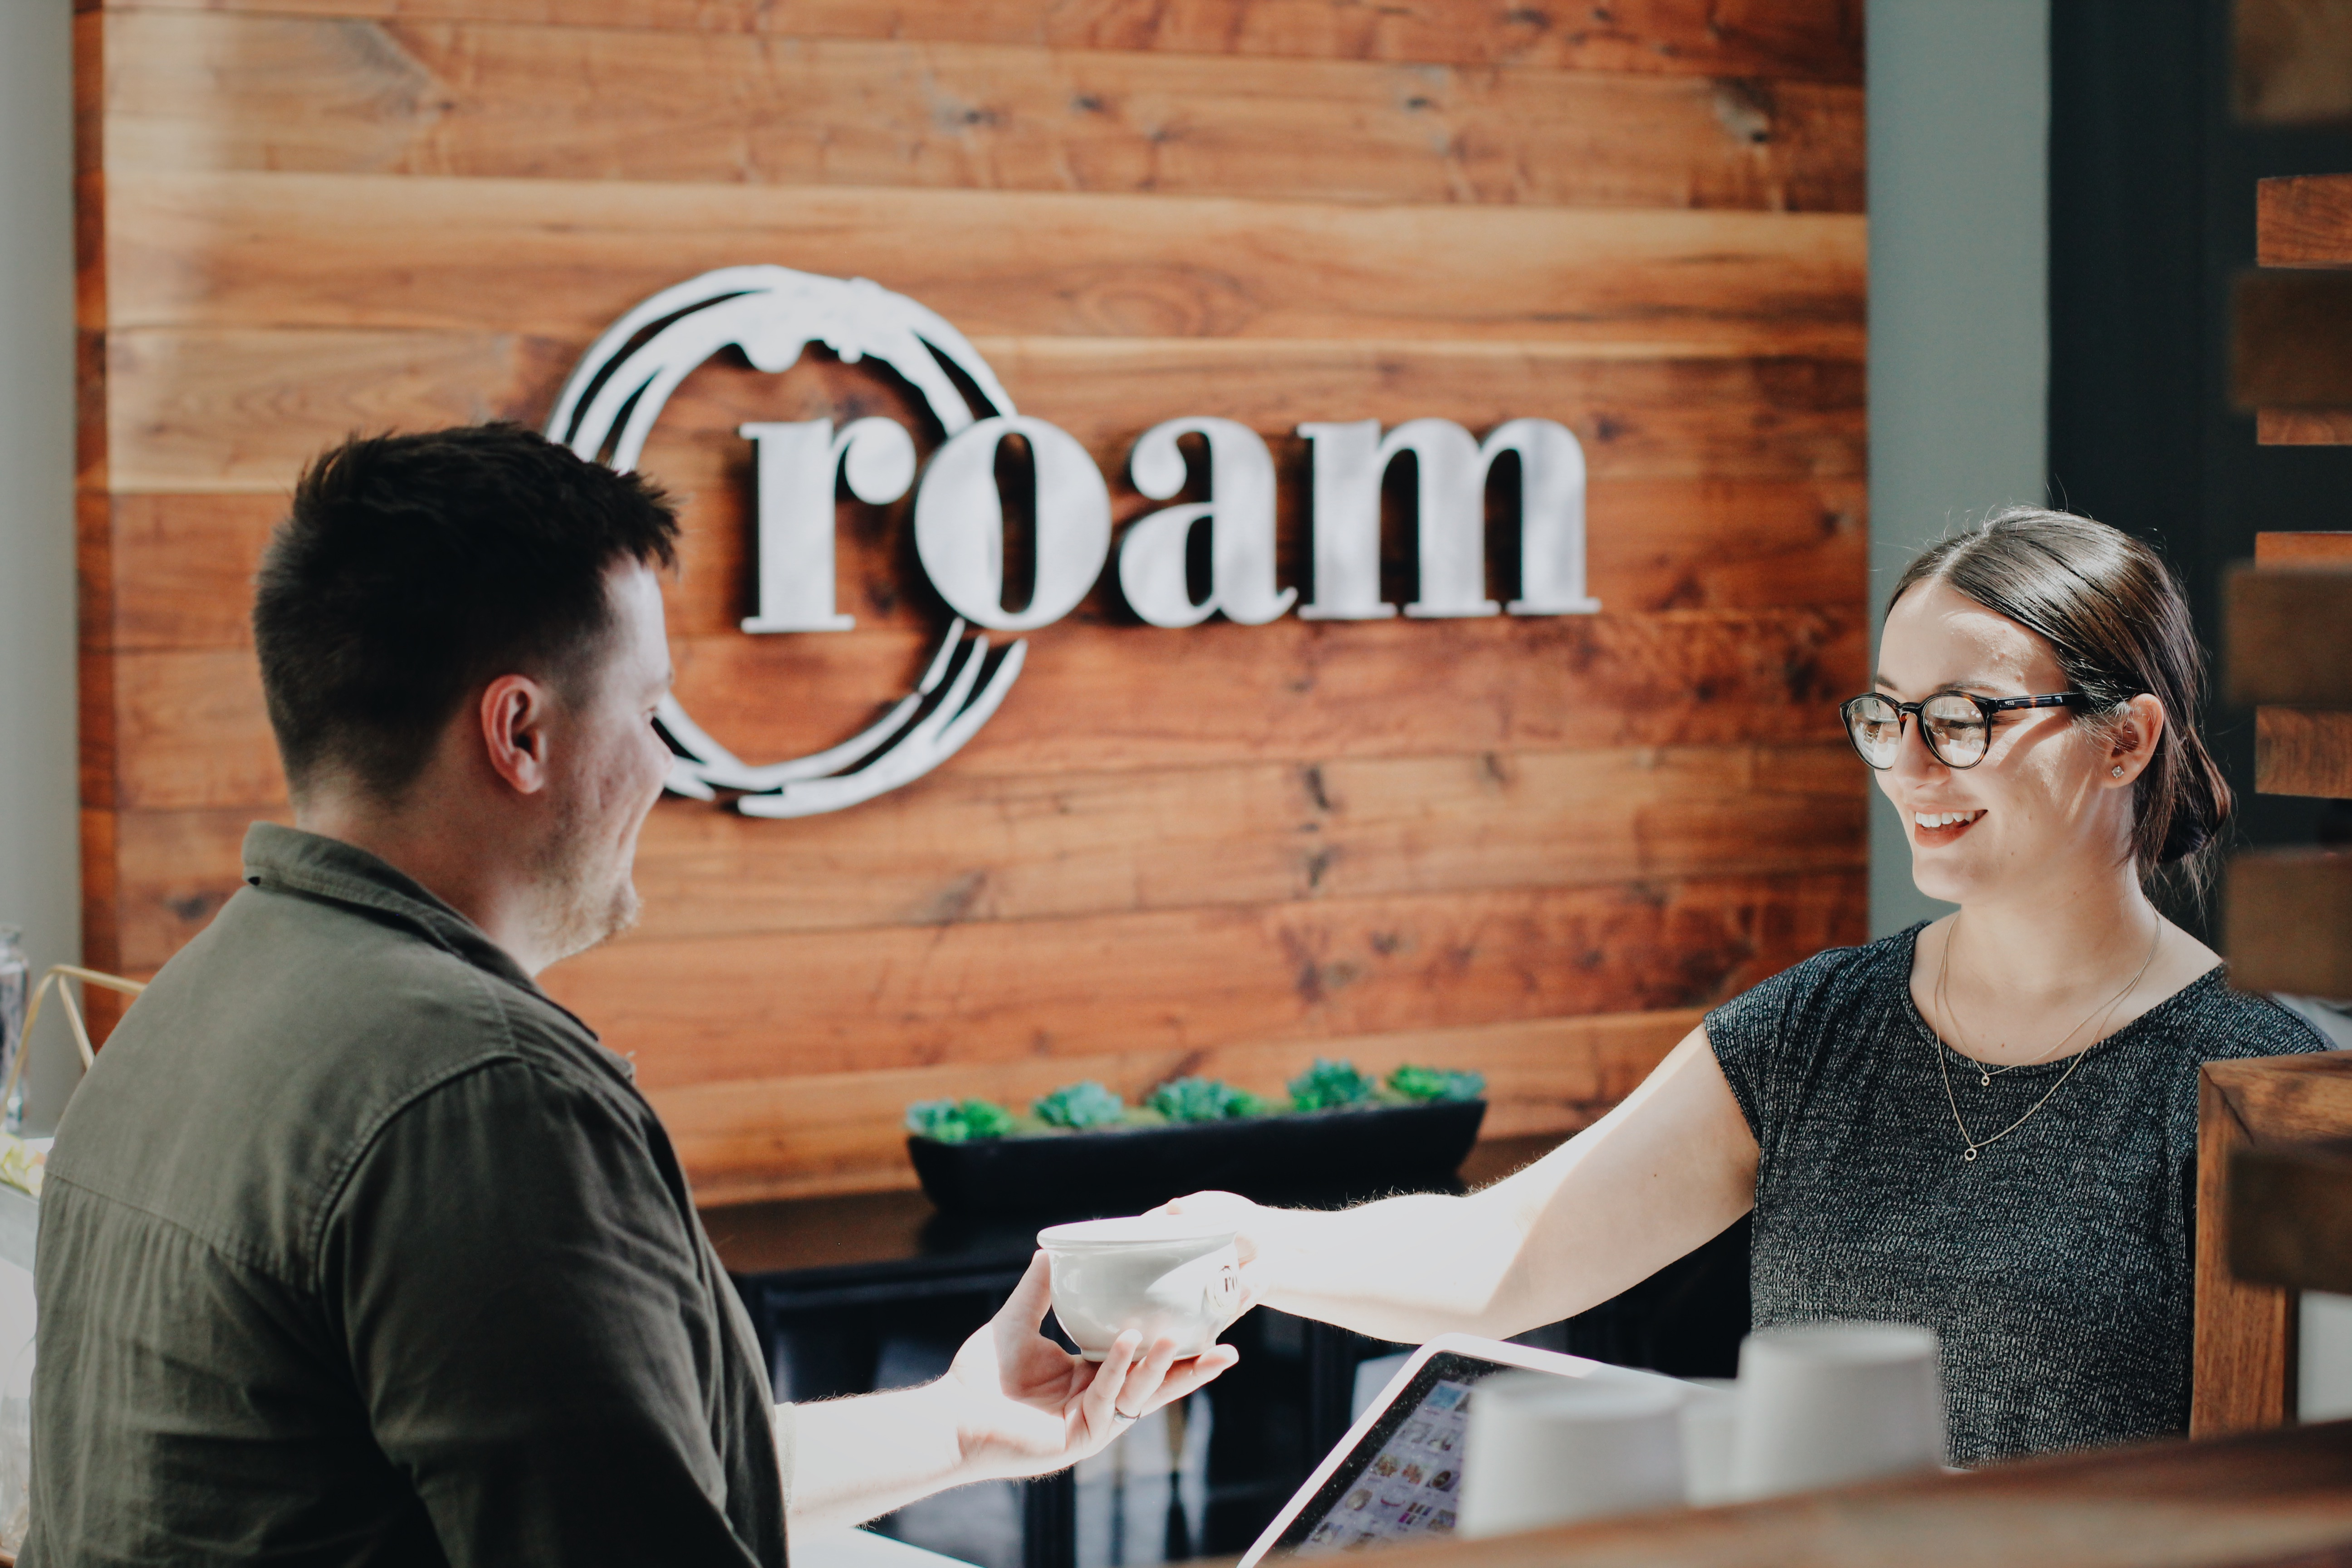 Employee serving coffee at Roam